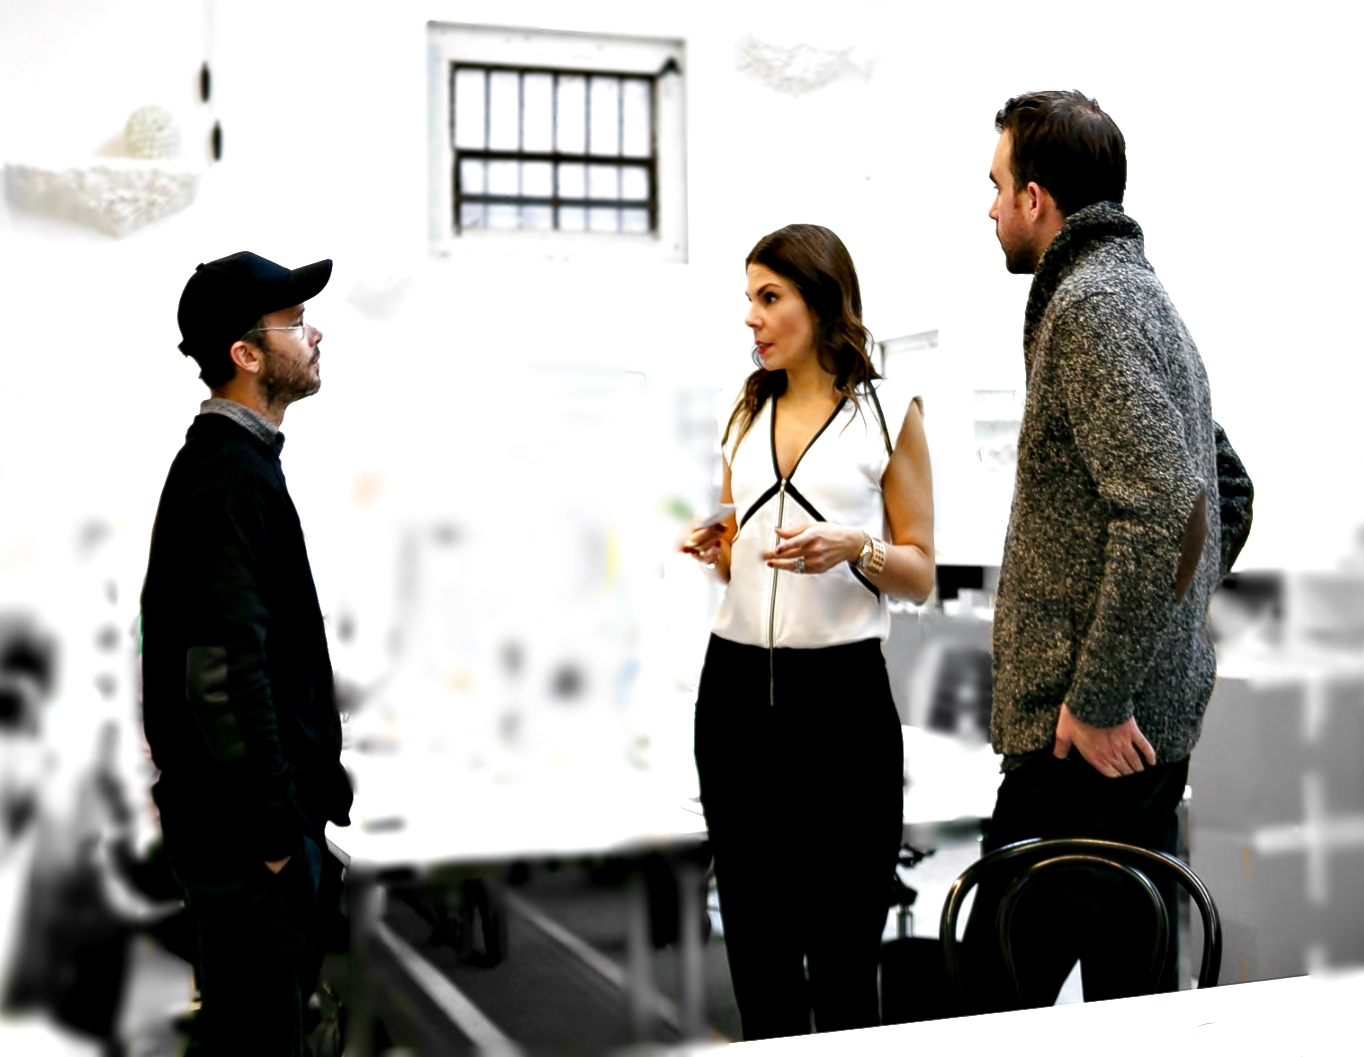 Daniel Arsham, Alex Mustonen and me at the Snarkitecture studio in Brooklyn.  All pictures by Black Dot Creative.